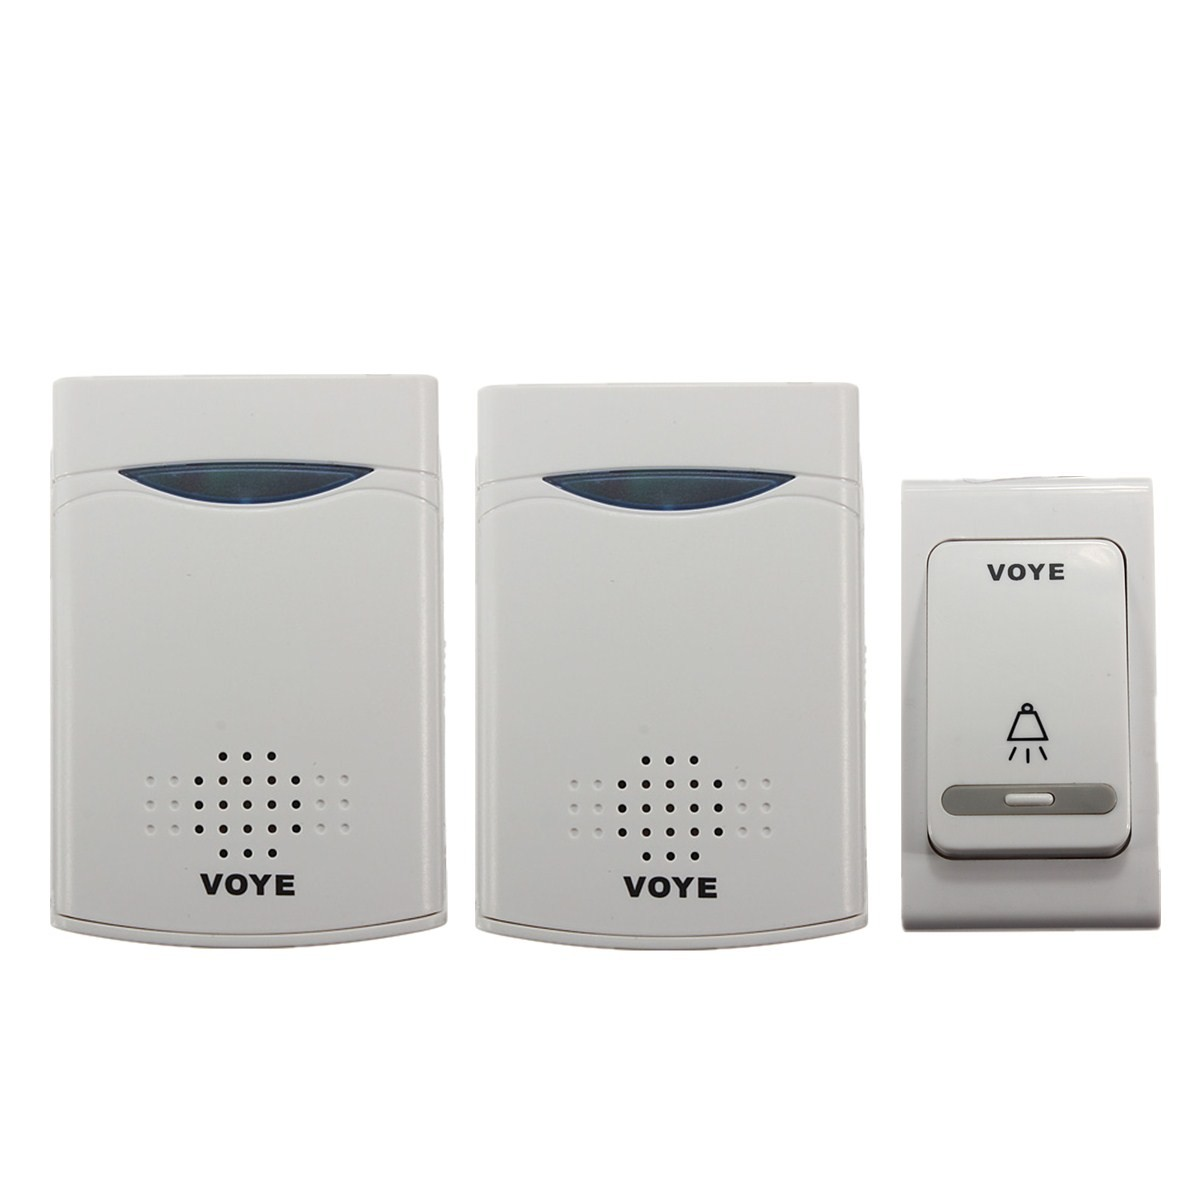 38 music chime wireless door bell 1 remote control 2 for 1 by one door chime